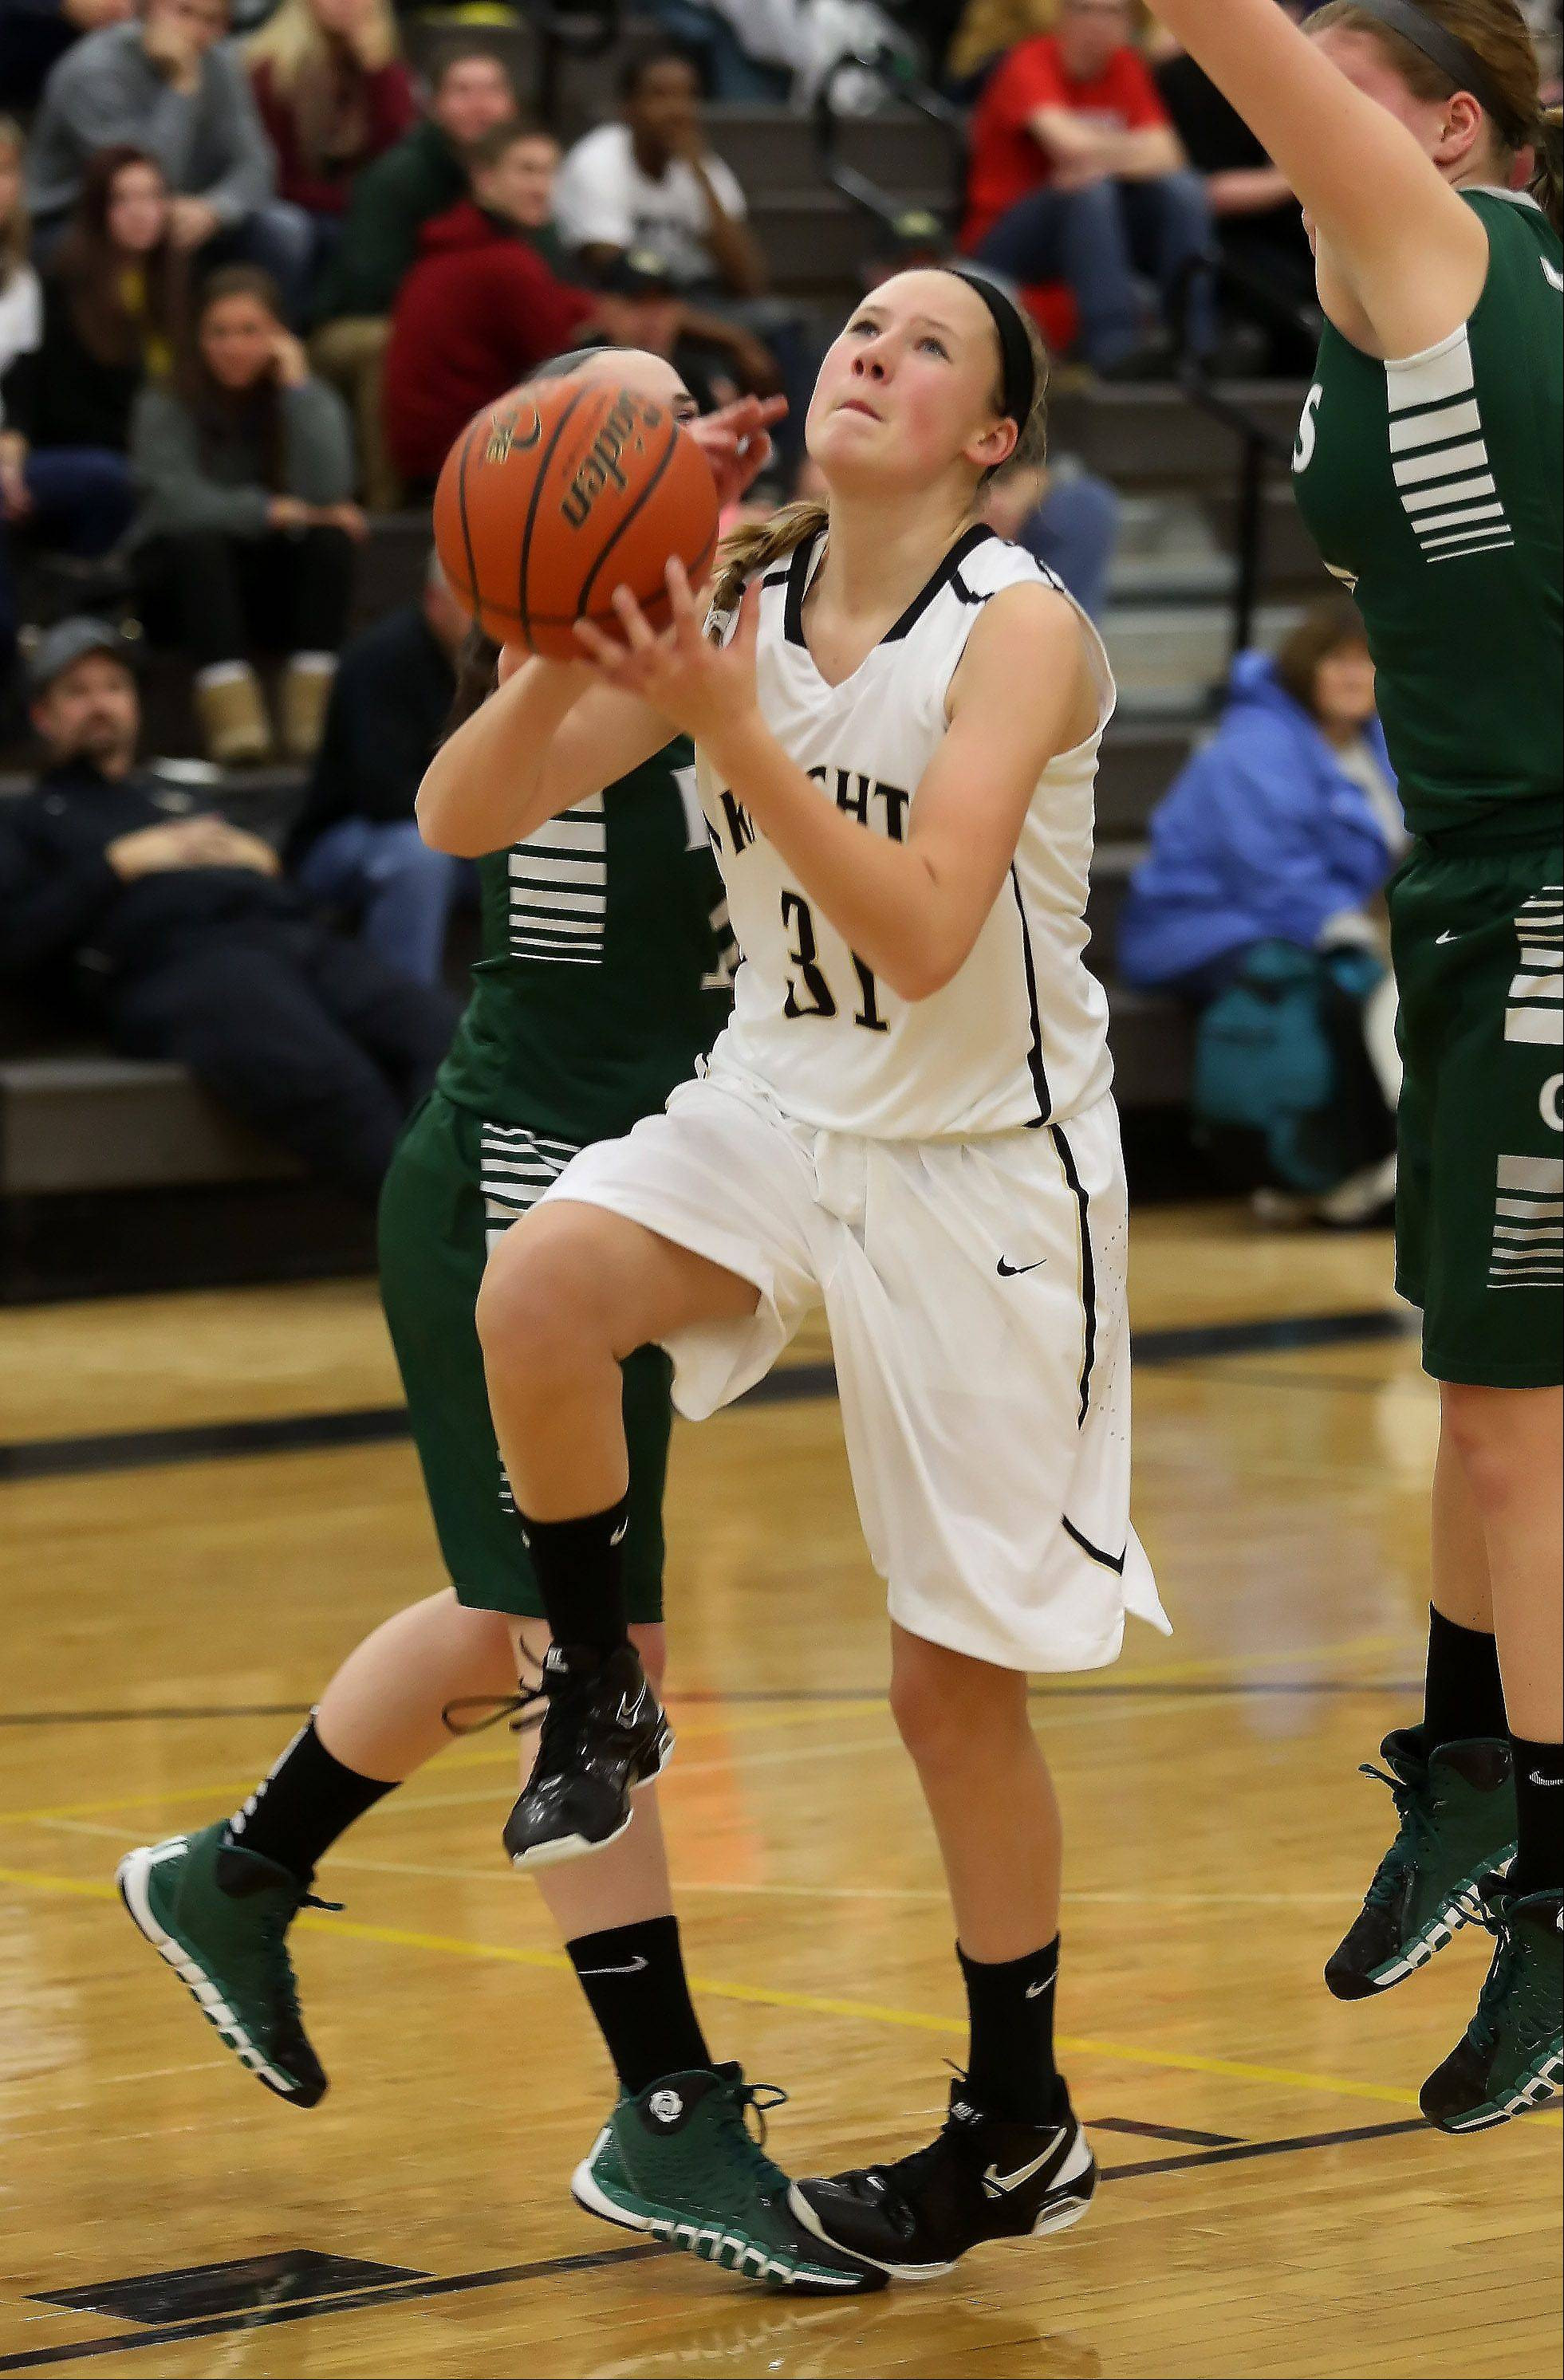 Grayslake North guard Kayla Hartigan is fouled as she goes up for a layup against Grayslake Central on Thursday at Grayslake North.